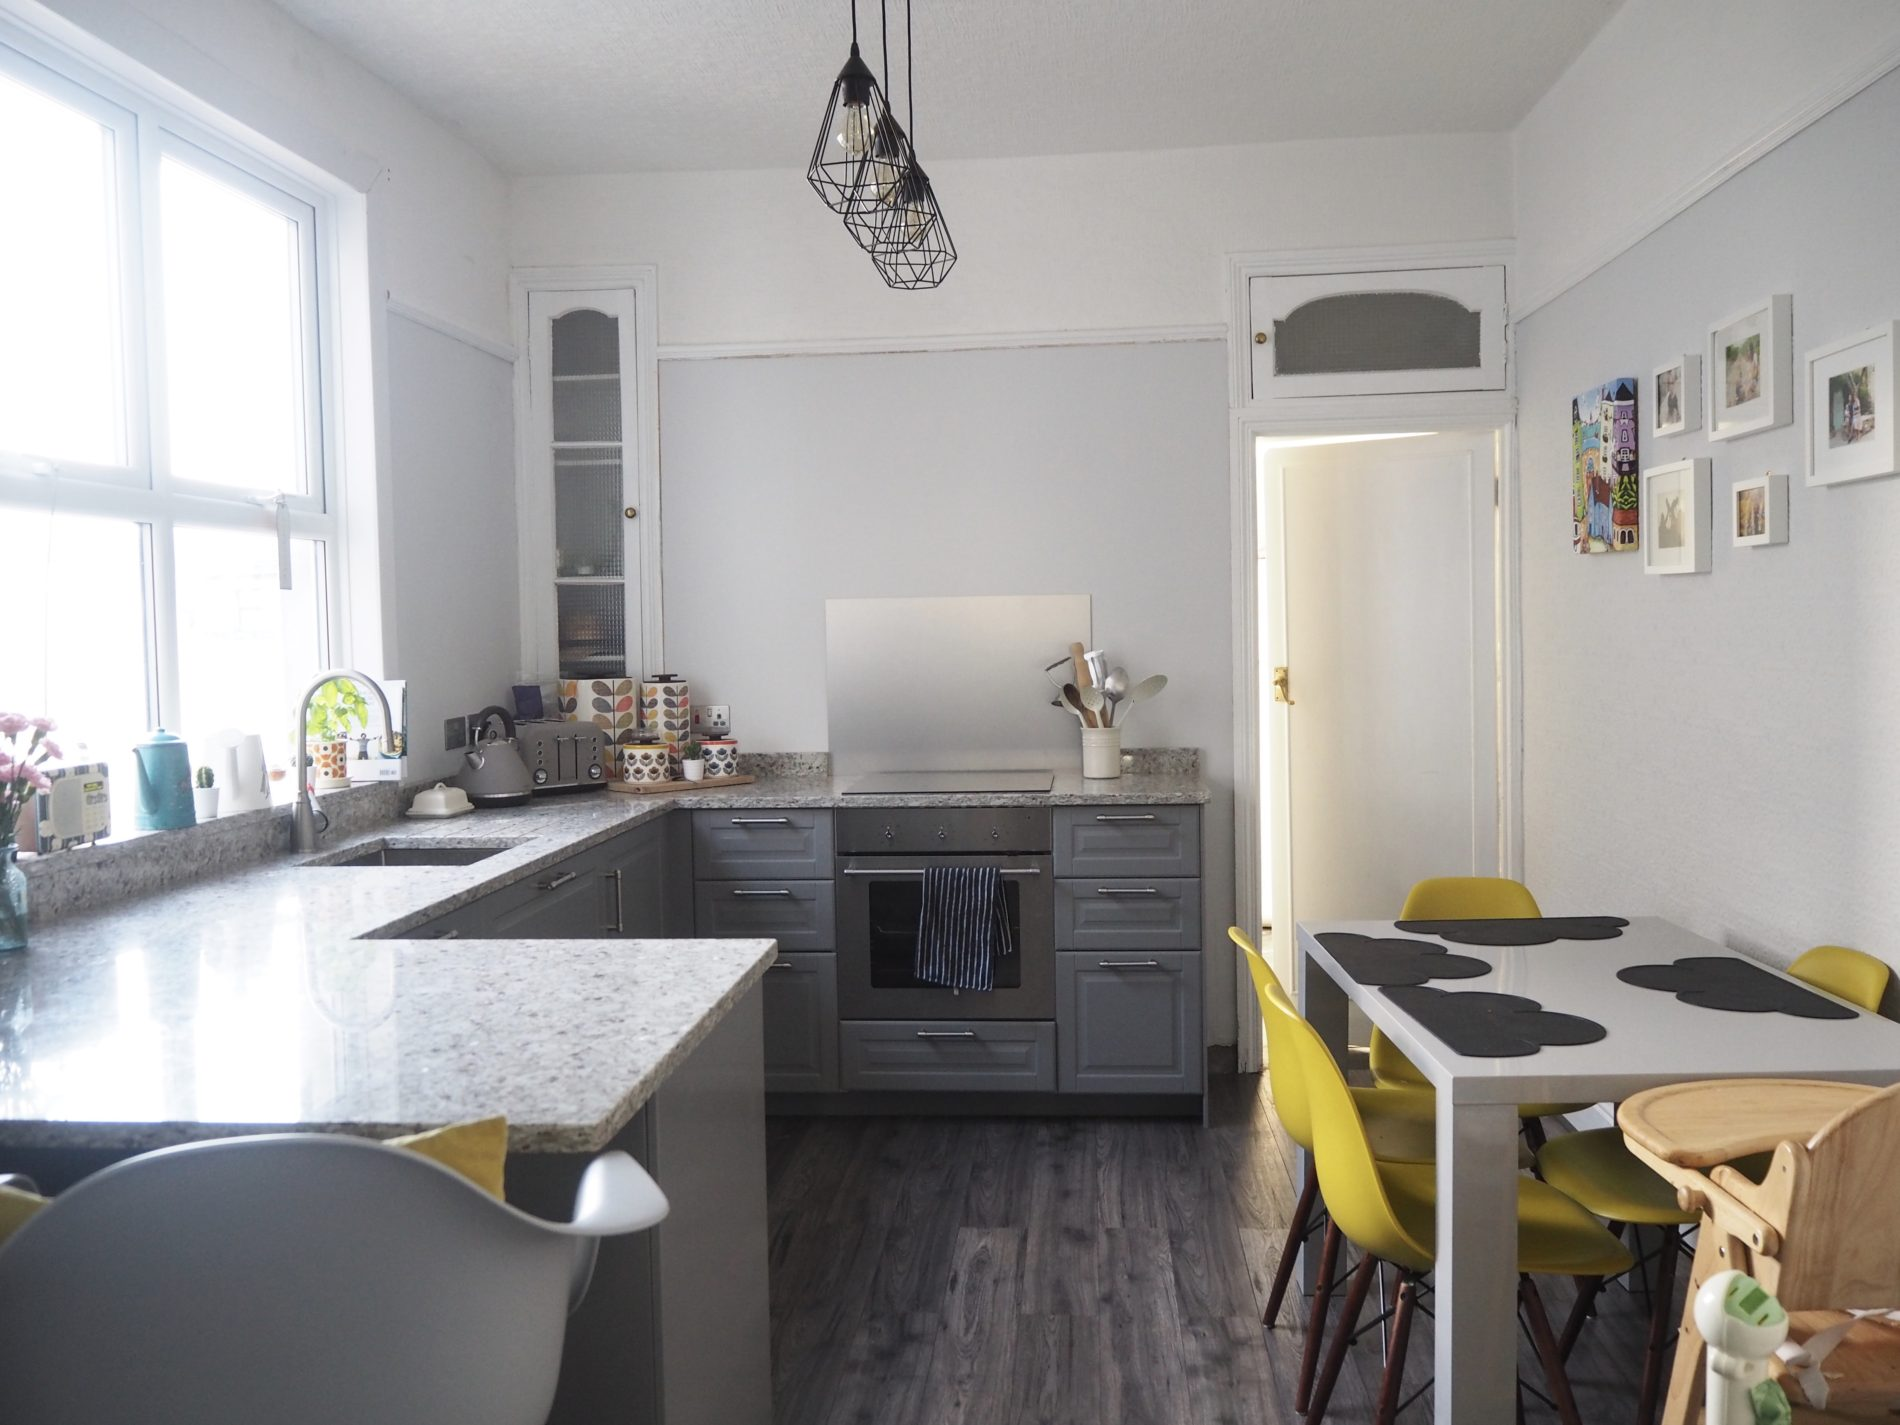 Grey IKEA kitchen / dining room makeover: The result